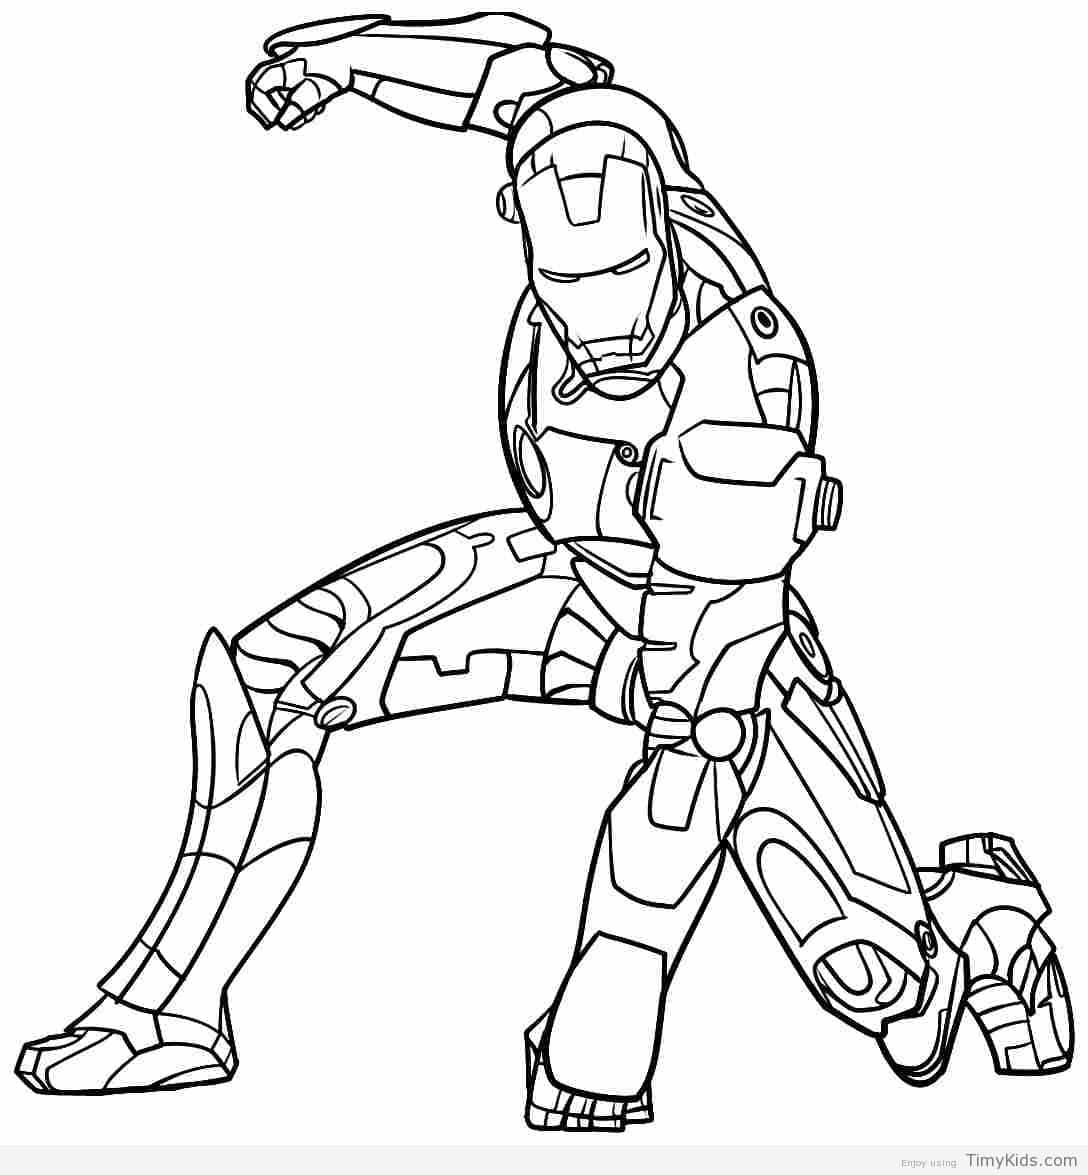 iron man coloring book free printable iron man coloring pages for kids cool2bkids book coloring man iron